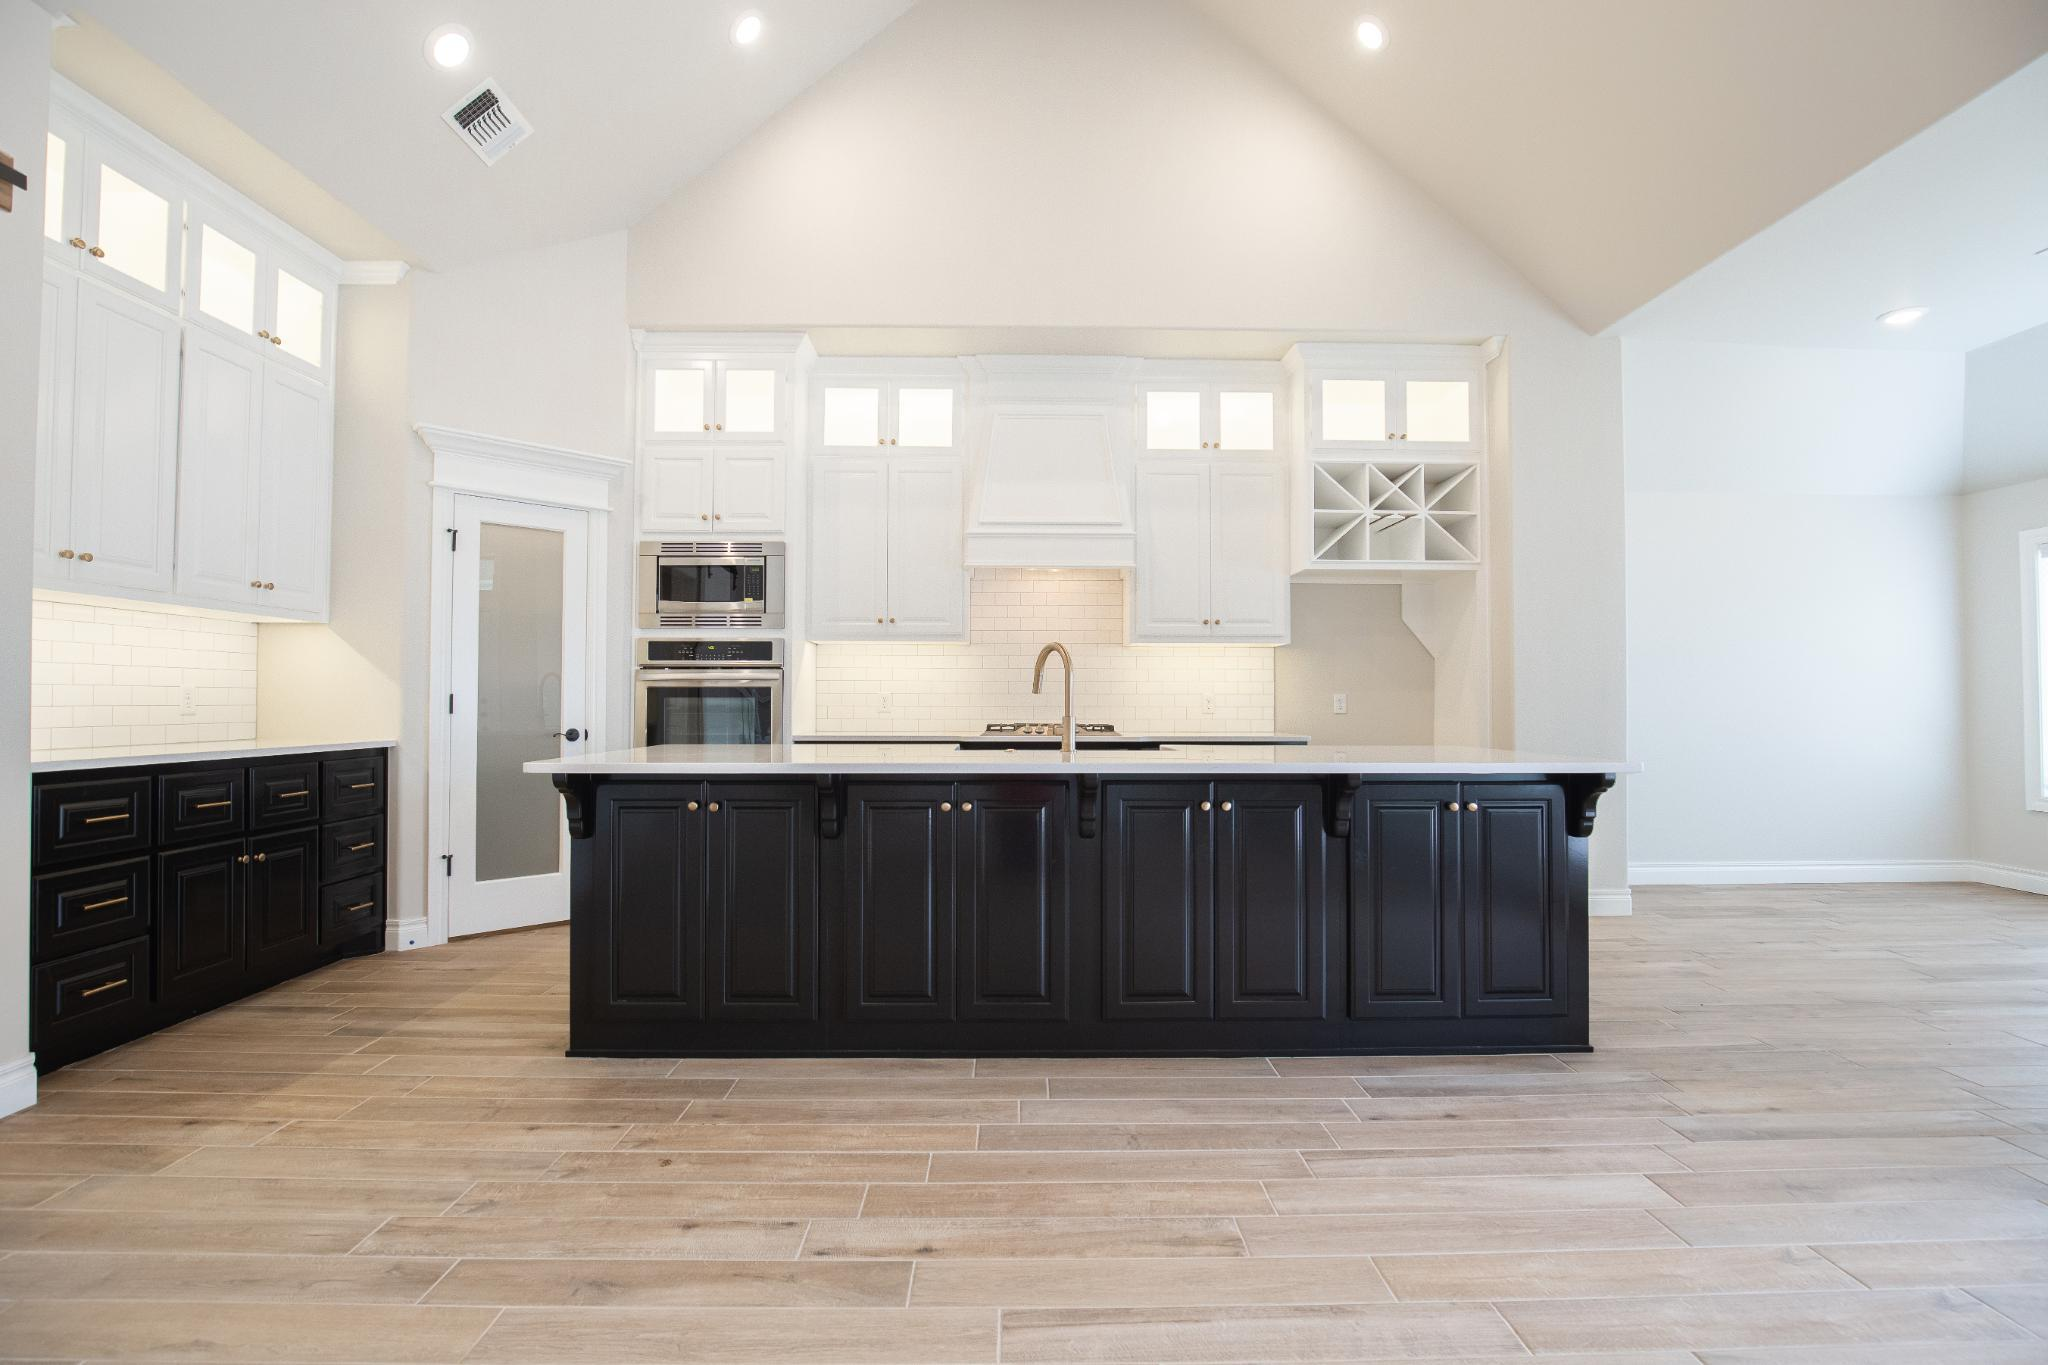 Kitchen featured in the Zade By Homes By Taber in Oklahoma City, OK